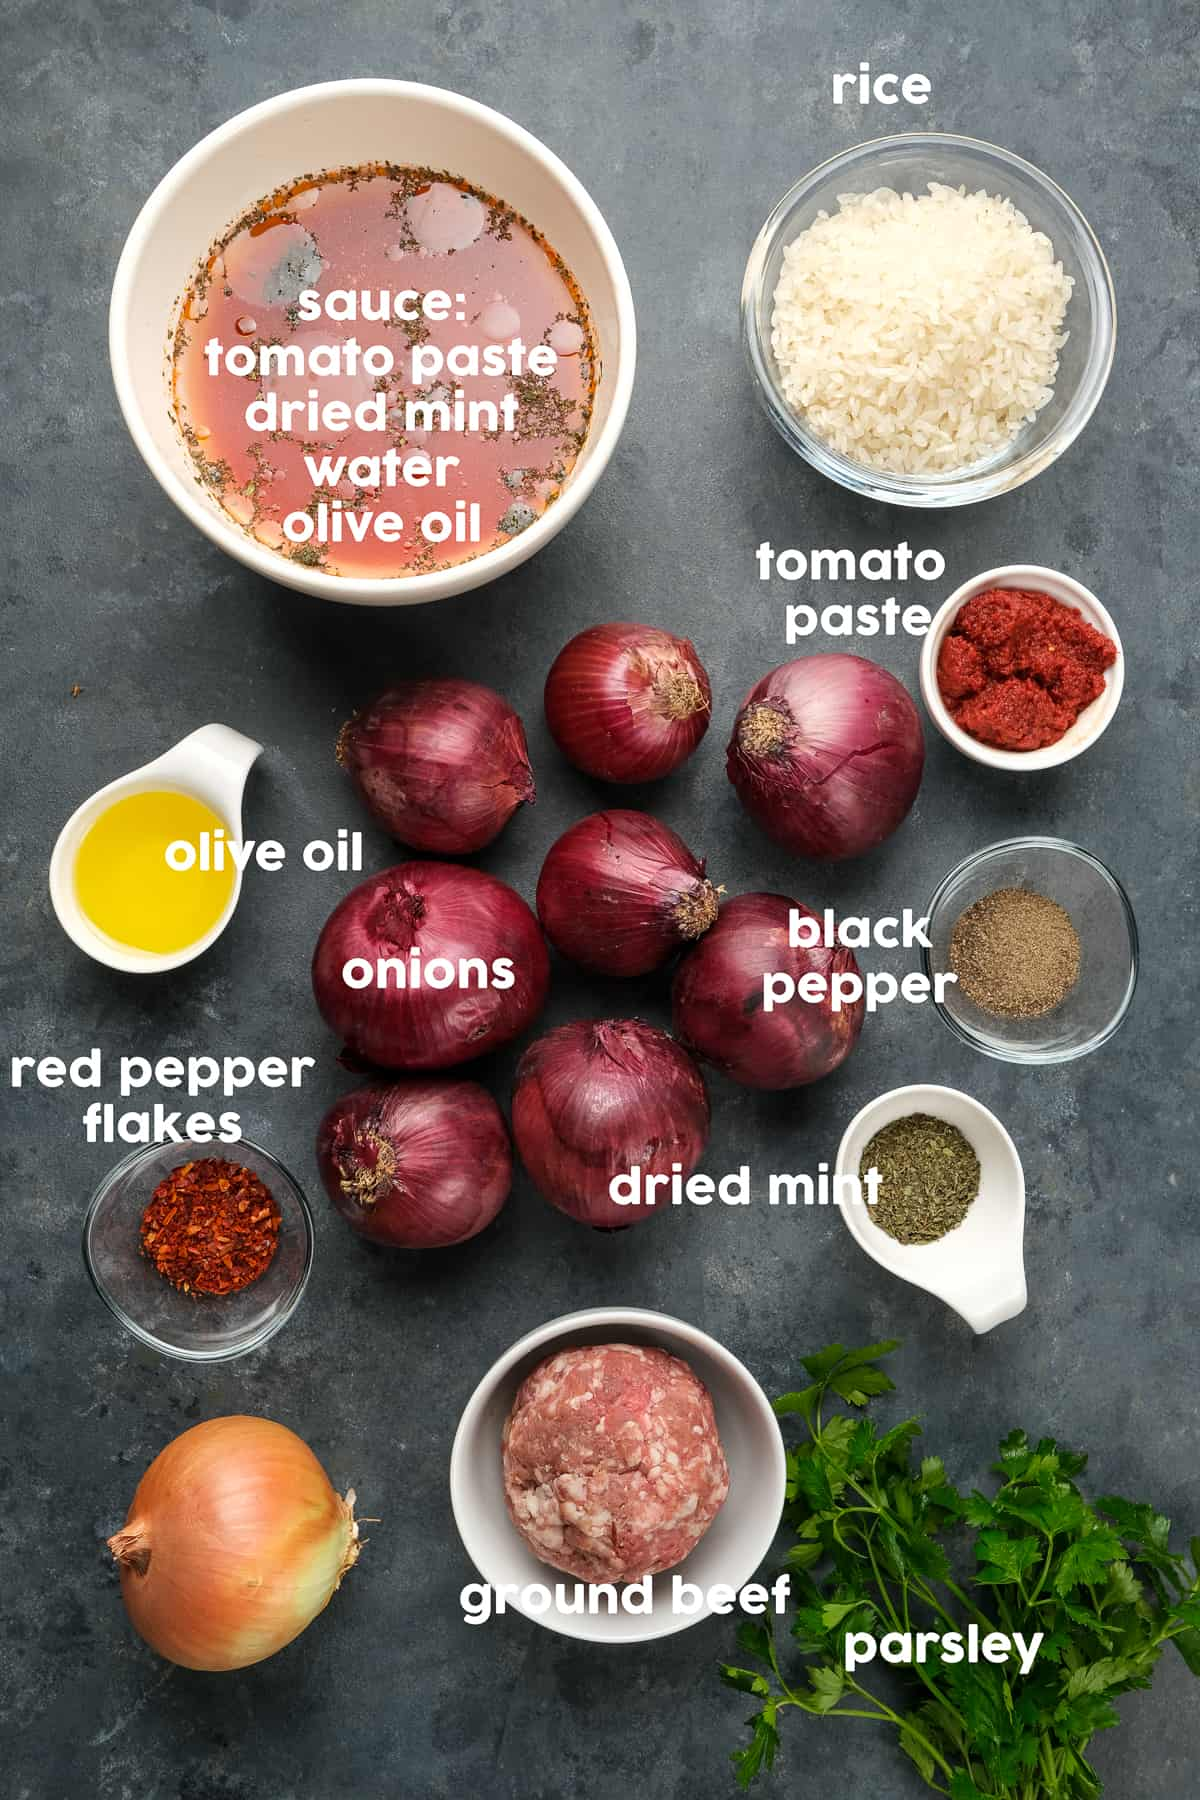 Purple onions, tomato paste, ground beef, rice, red pepper flakes, dried mint, tomato sauce, black pepper, dried mint, parsley on a dark background.